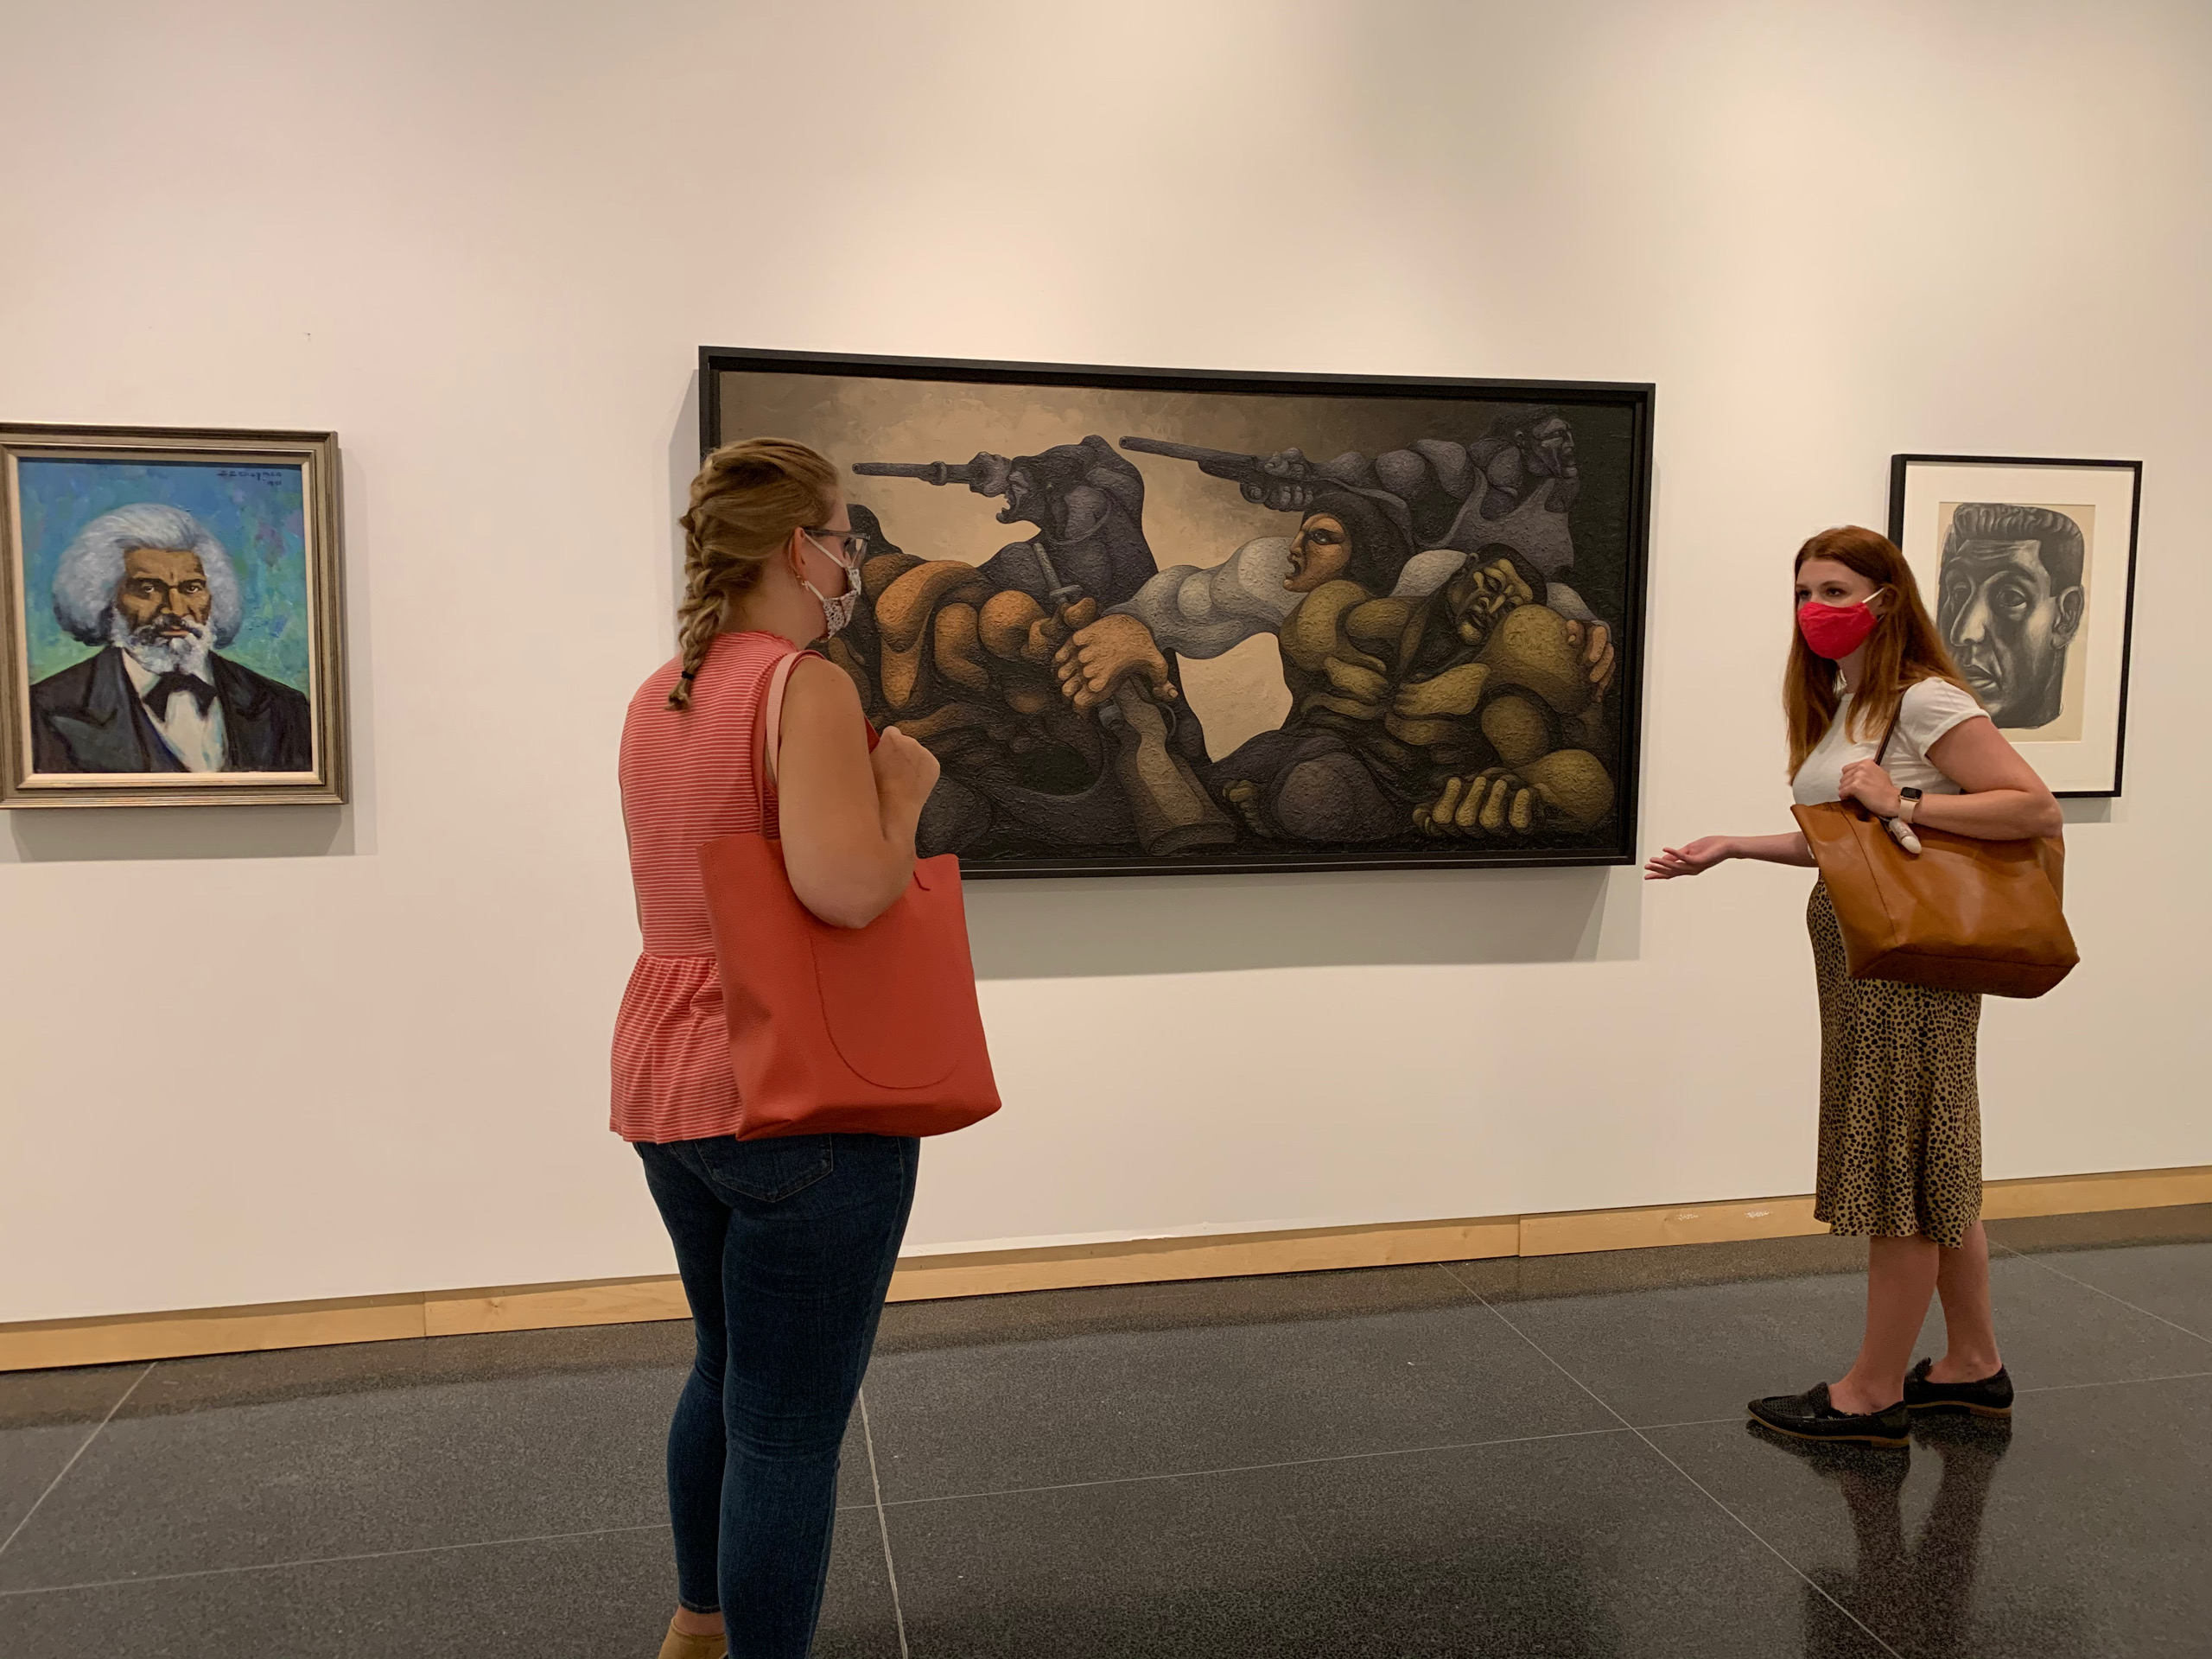 Two women in a museum, having a conversation in front of artwork